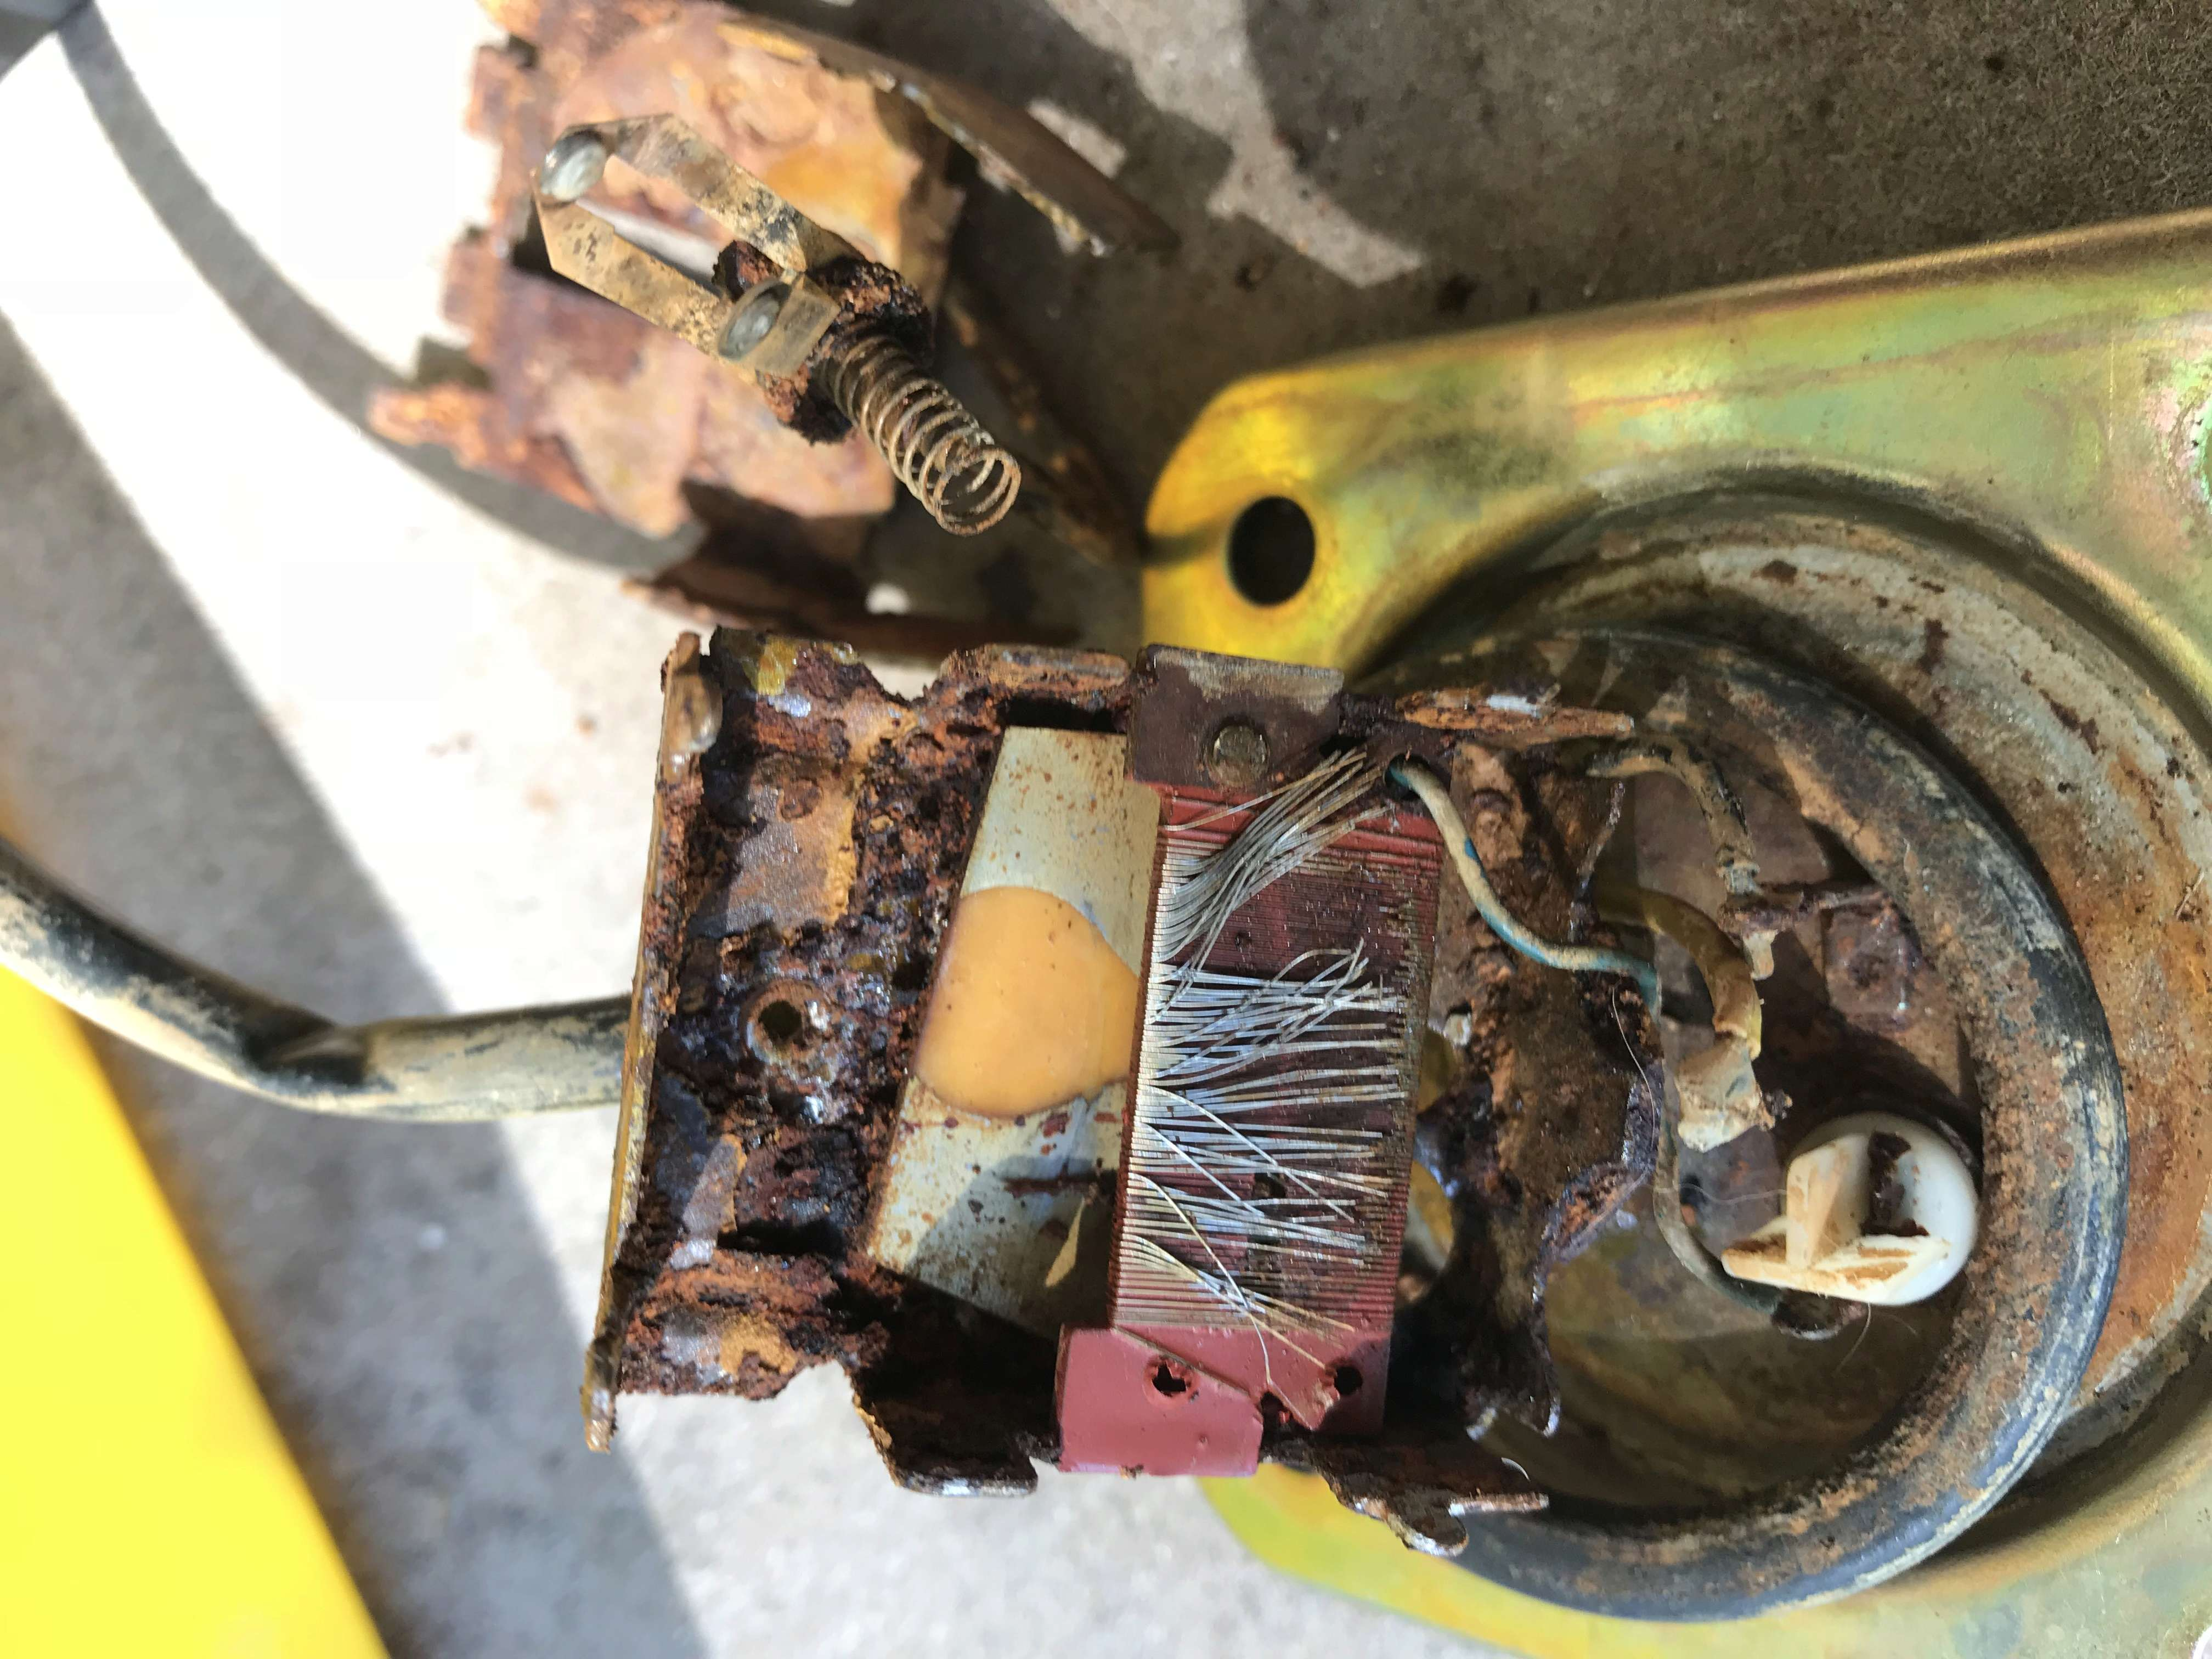 Does connector under the tank need to be hooked up to start bike. Cdd29010